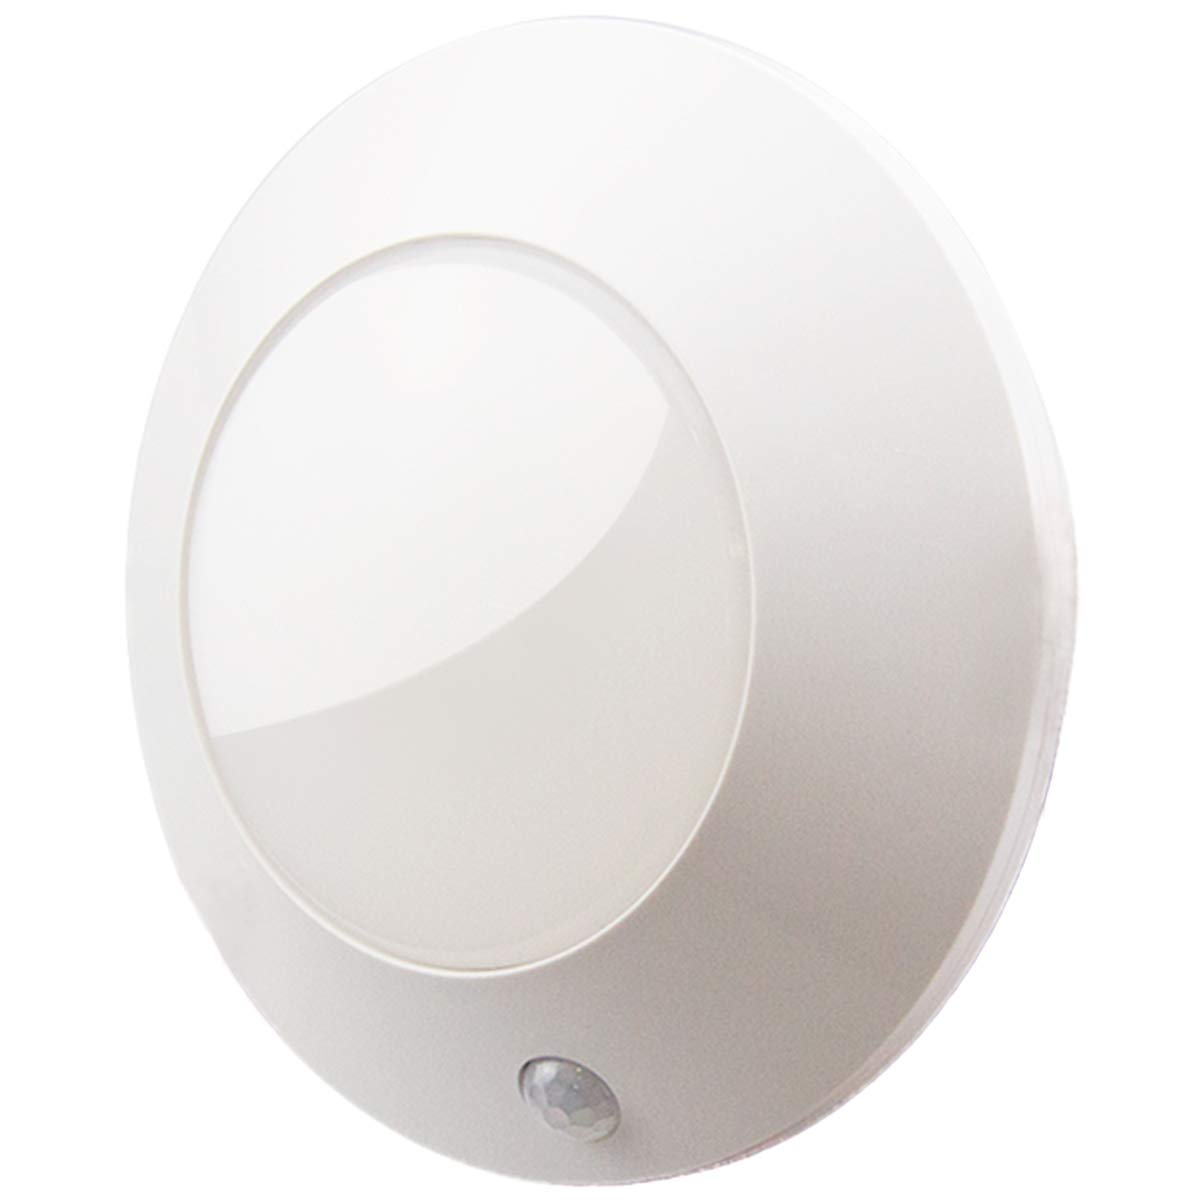 BIGLIGHT Bright Wireless Battery Operated Motion Sensor LED Ceiling Light, Motion Light for Shower Hallway Pantry Stairway Closet Entrance Hall Corridor Bathroom Shed, 250 Lumens, 5 Inch, Warm White